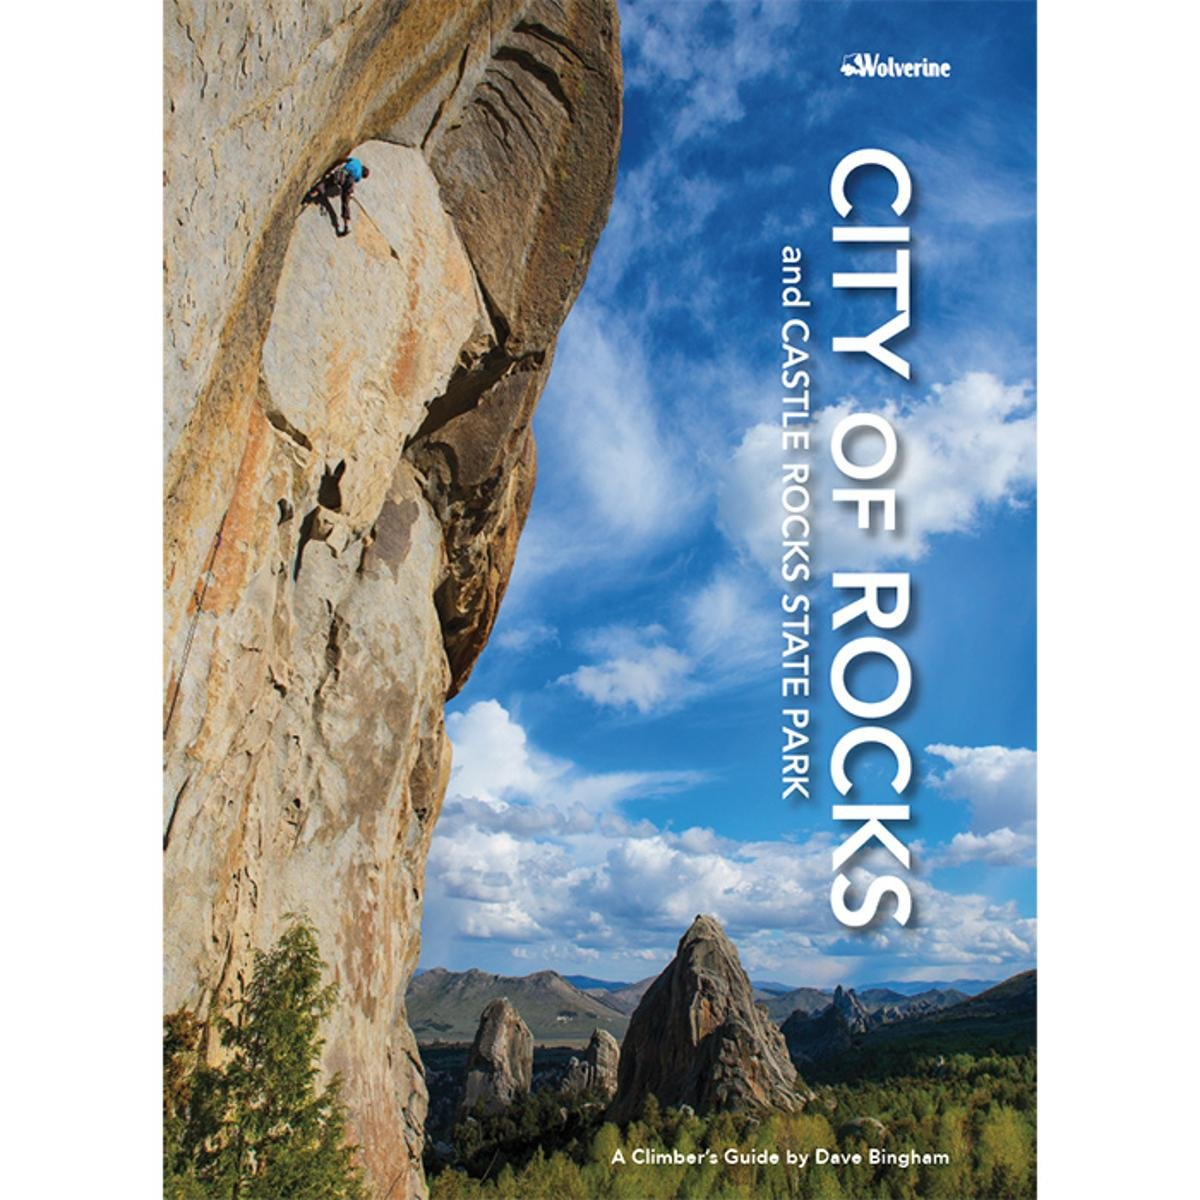 City Of Rocks And Castle Rocks: Dave Bingham: 9781938393242: Amazon.com:  Books